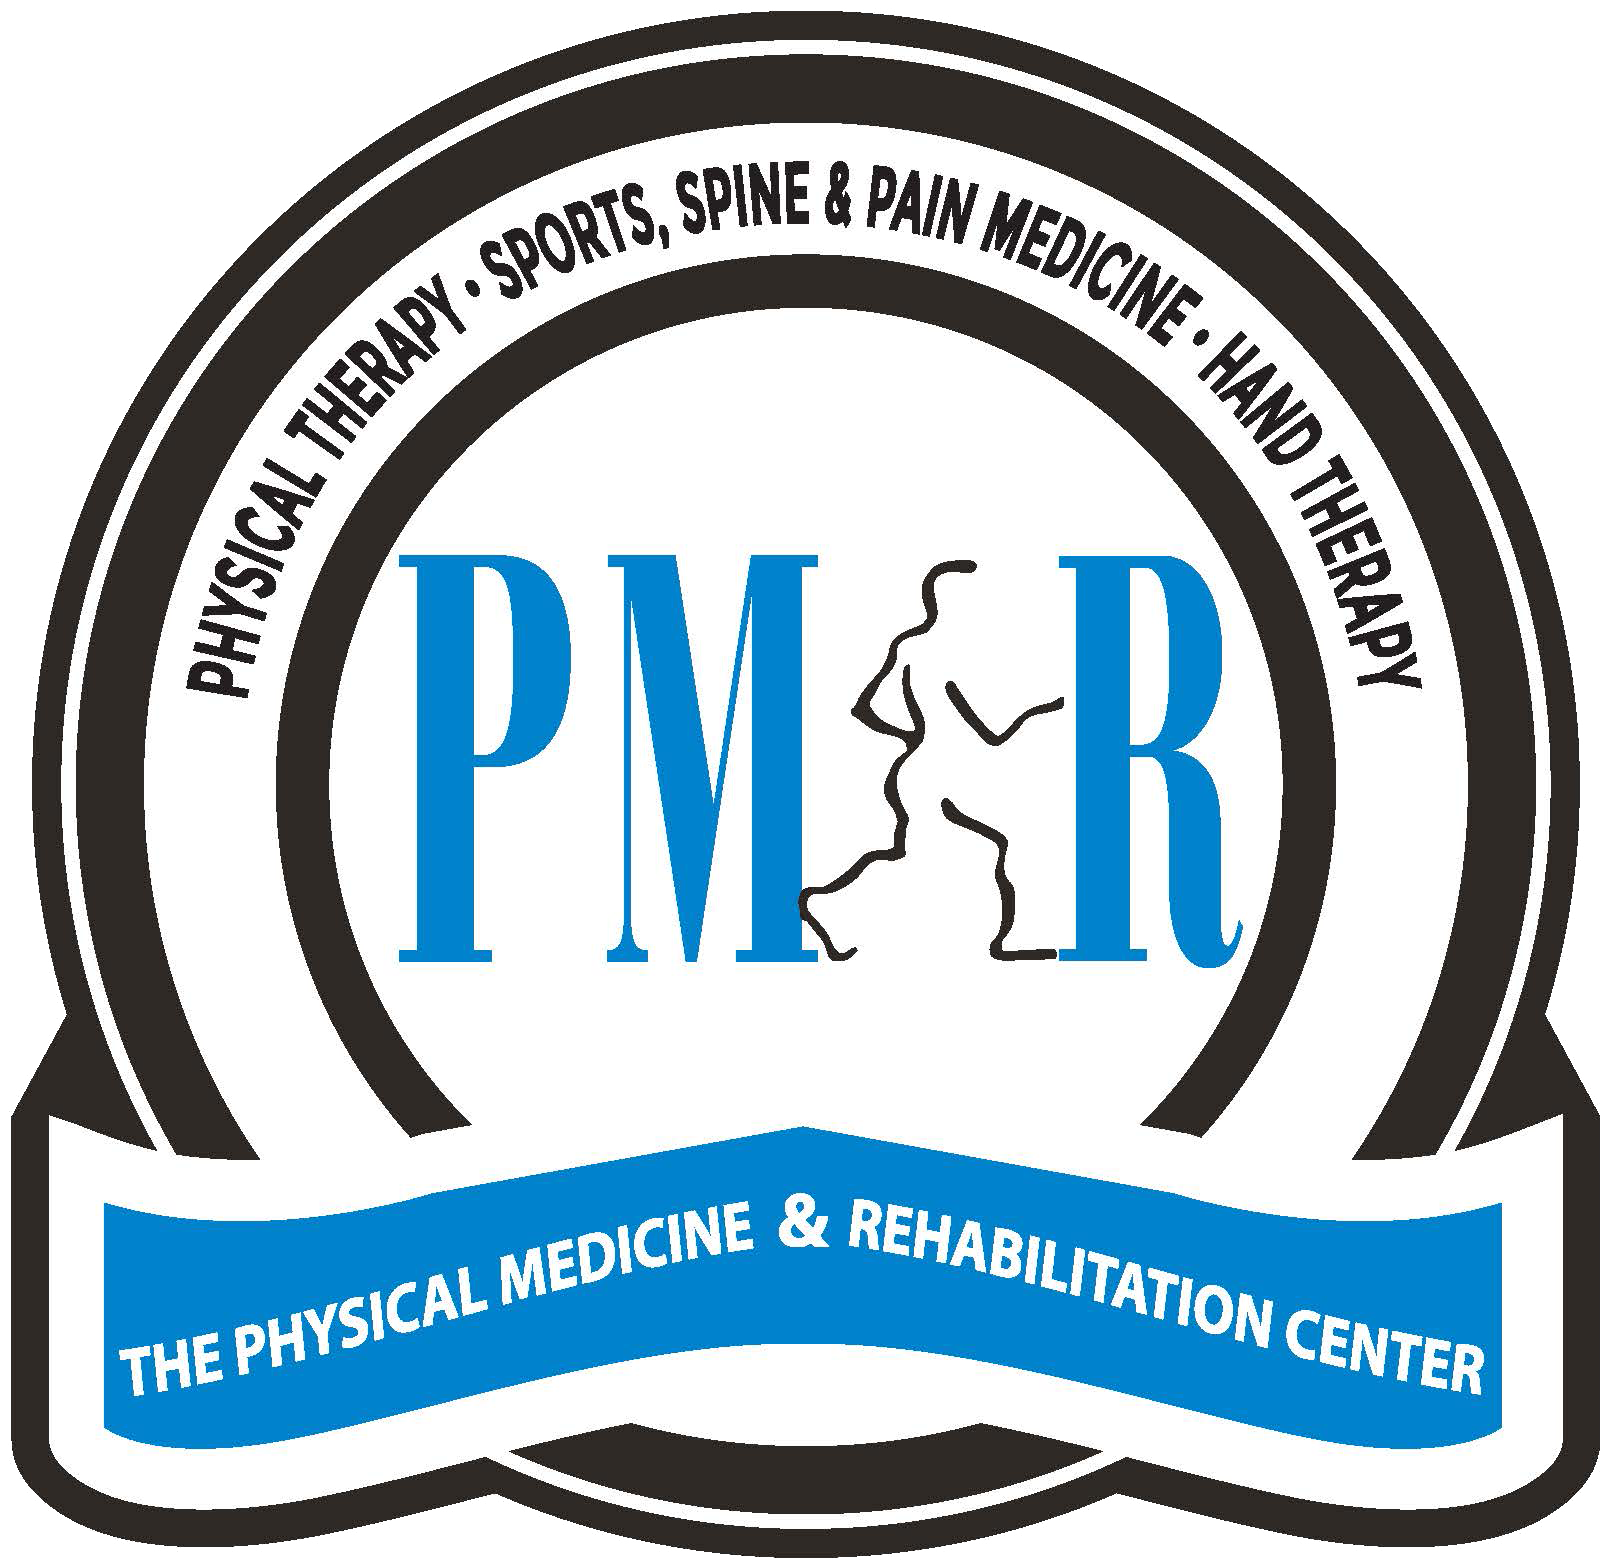 Therapist clipart sports medicine physician. Physical in englewood west